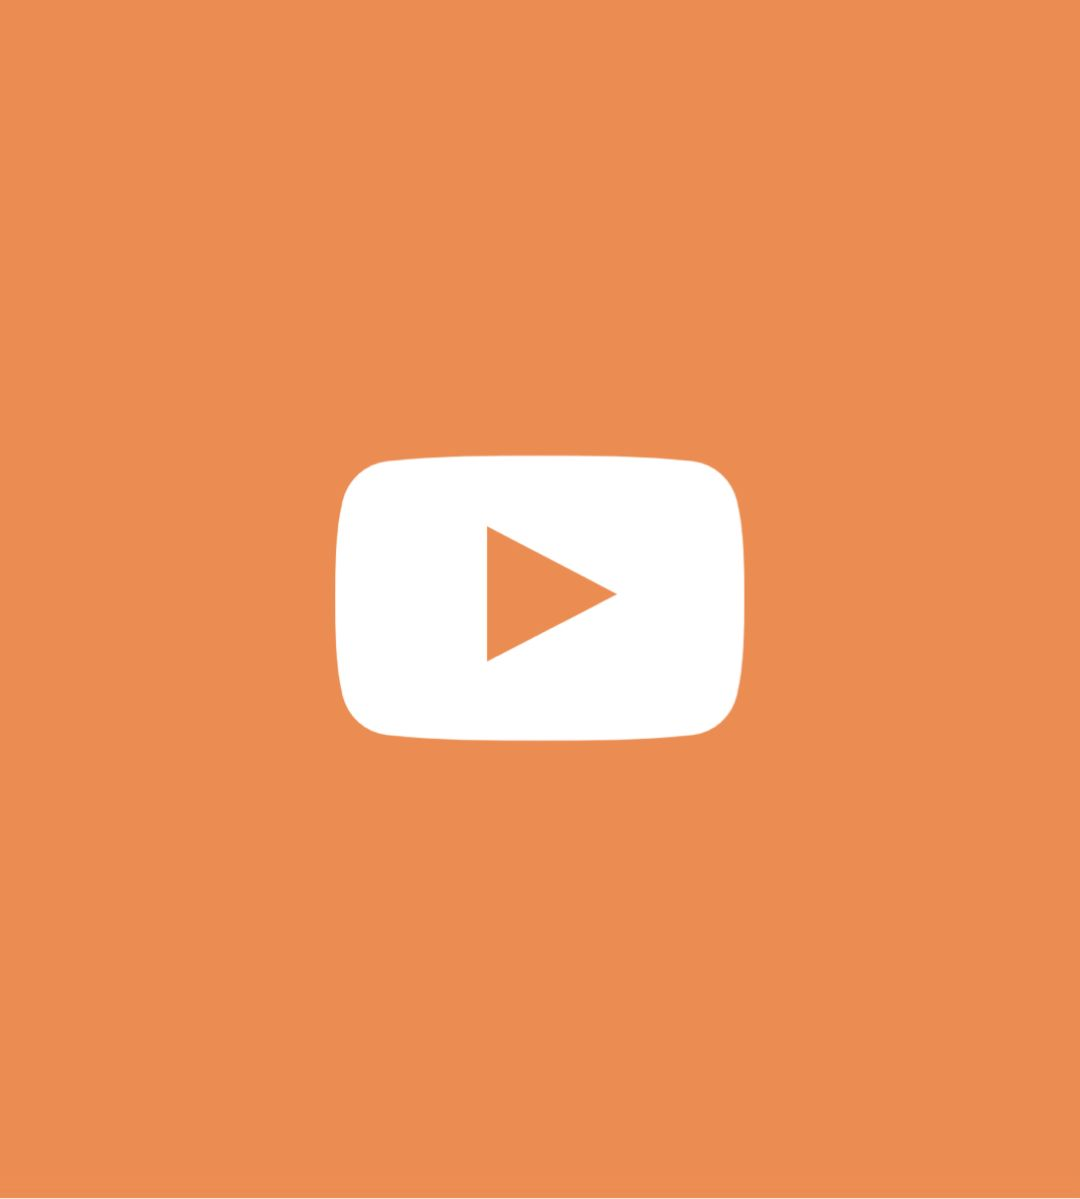 Youtube Icon In 2020 App Icon Design Vintage Phone Wallpaper Iphone Organization